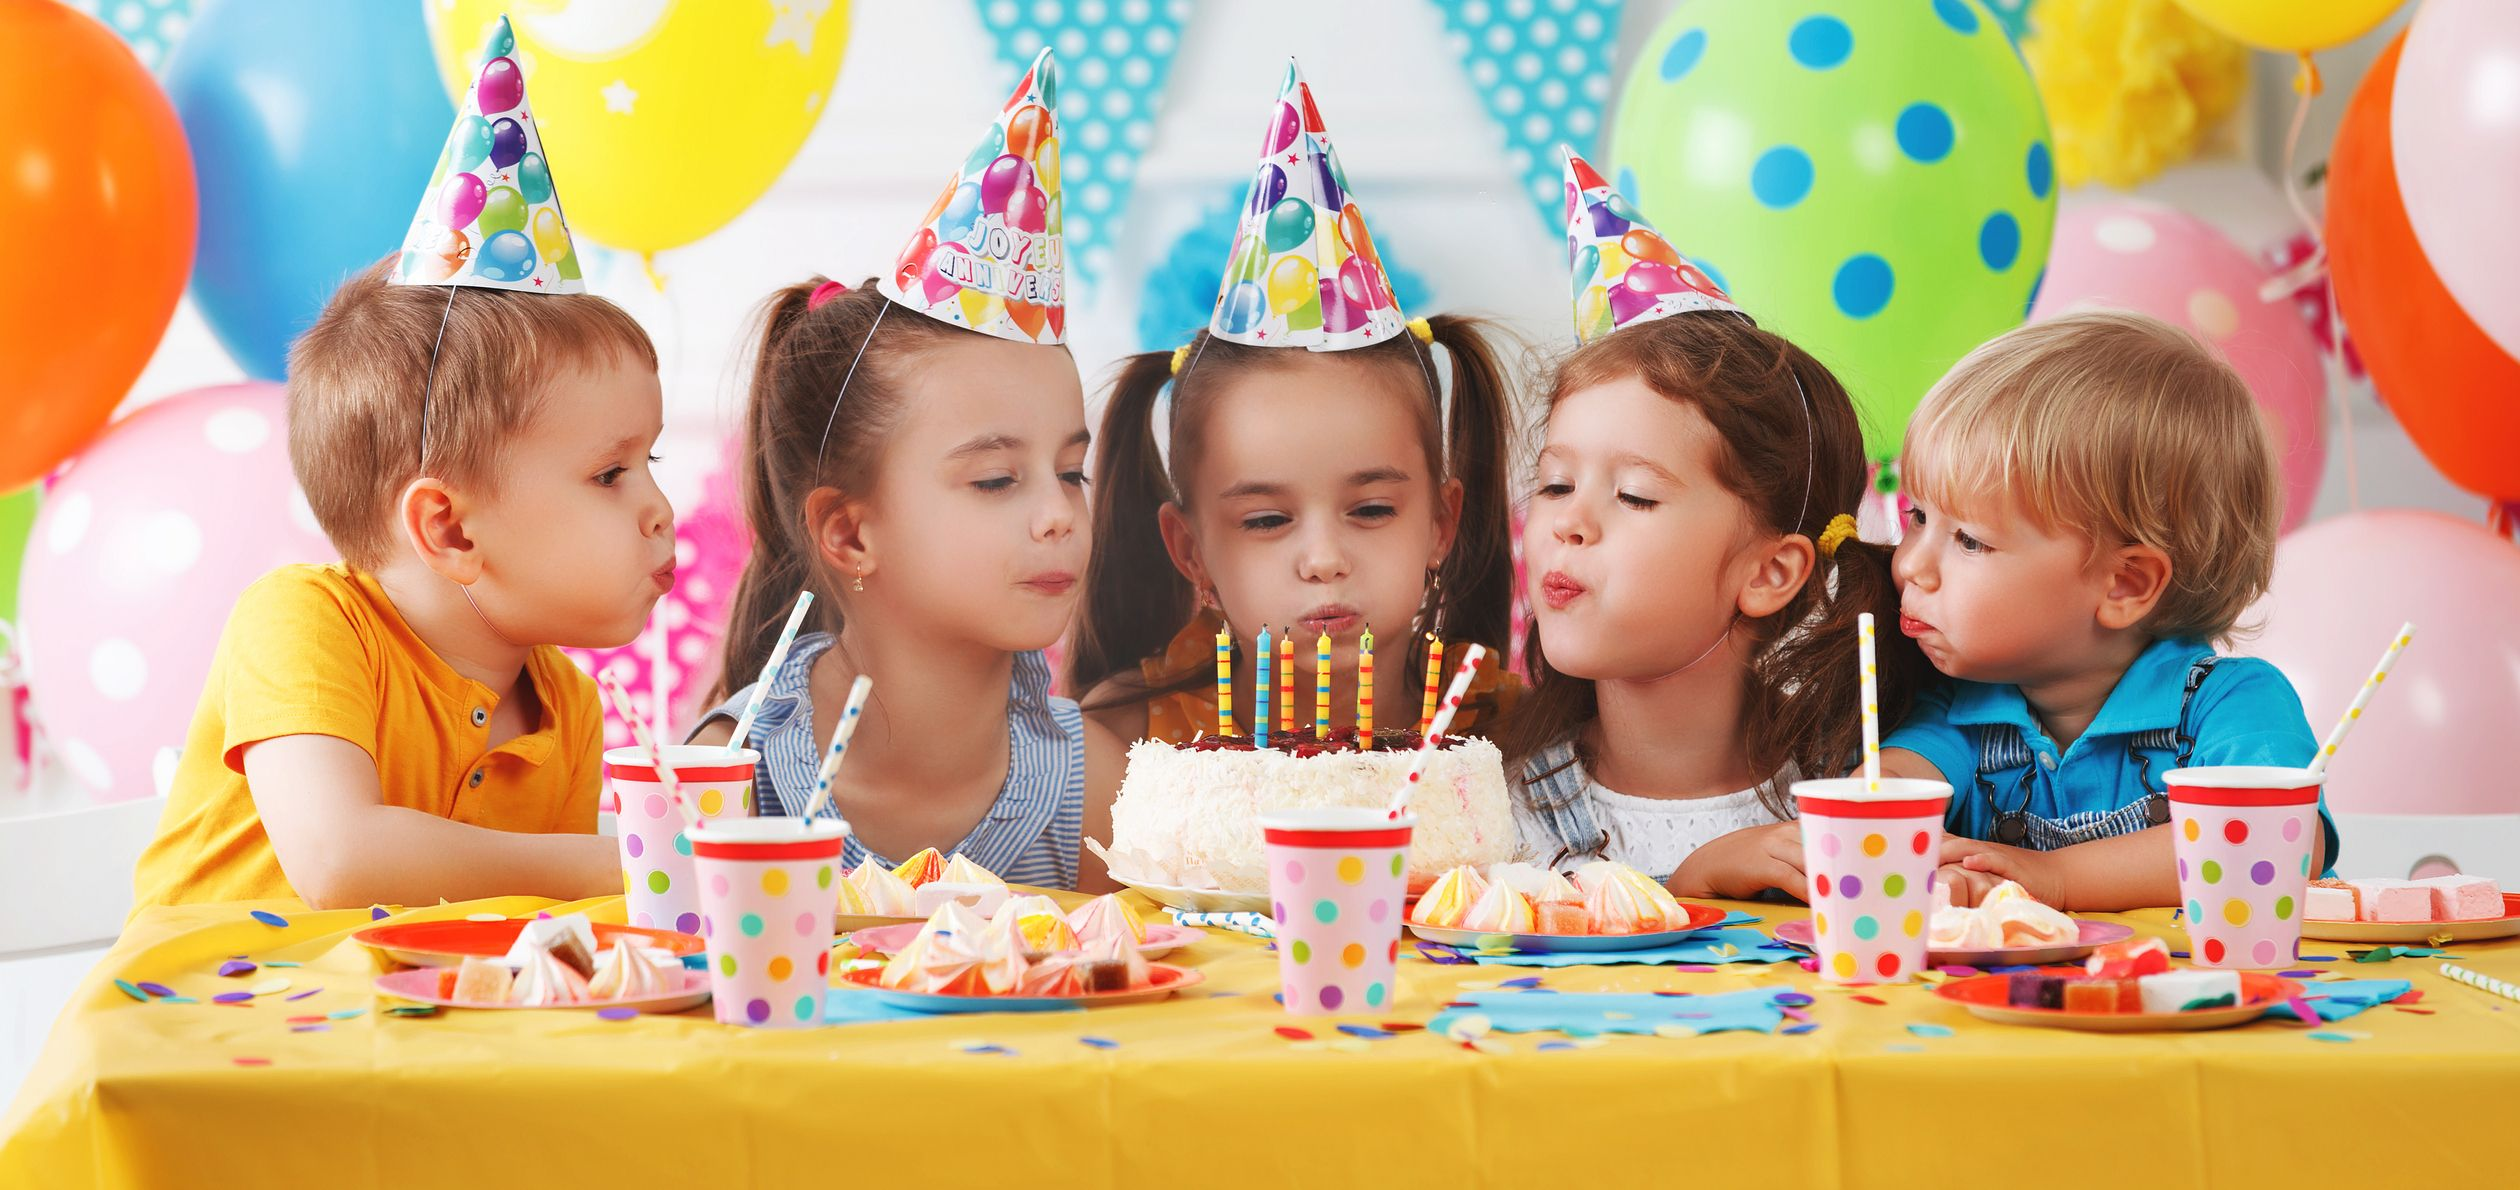 Fiver Parties Are The Newest Birthday Party Trend For Kids